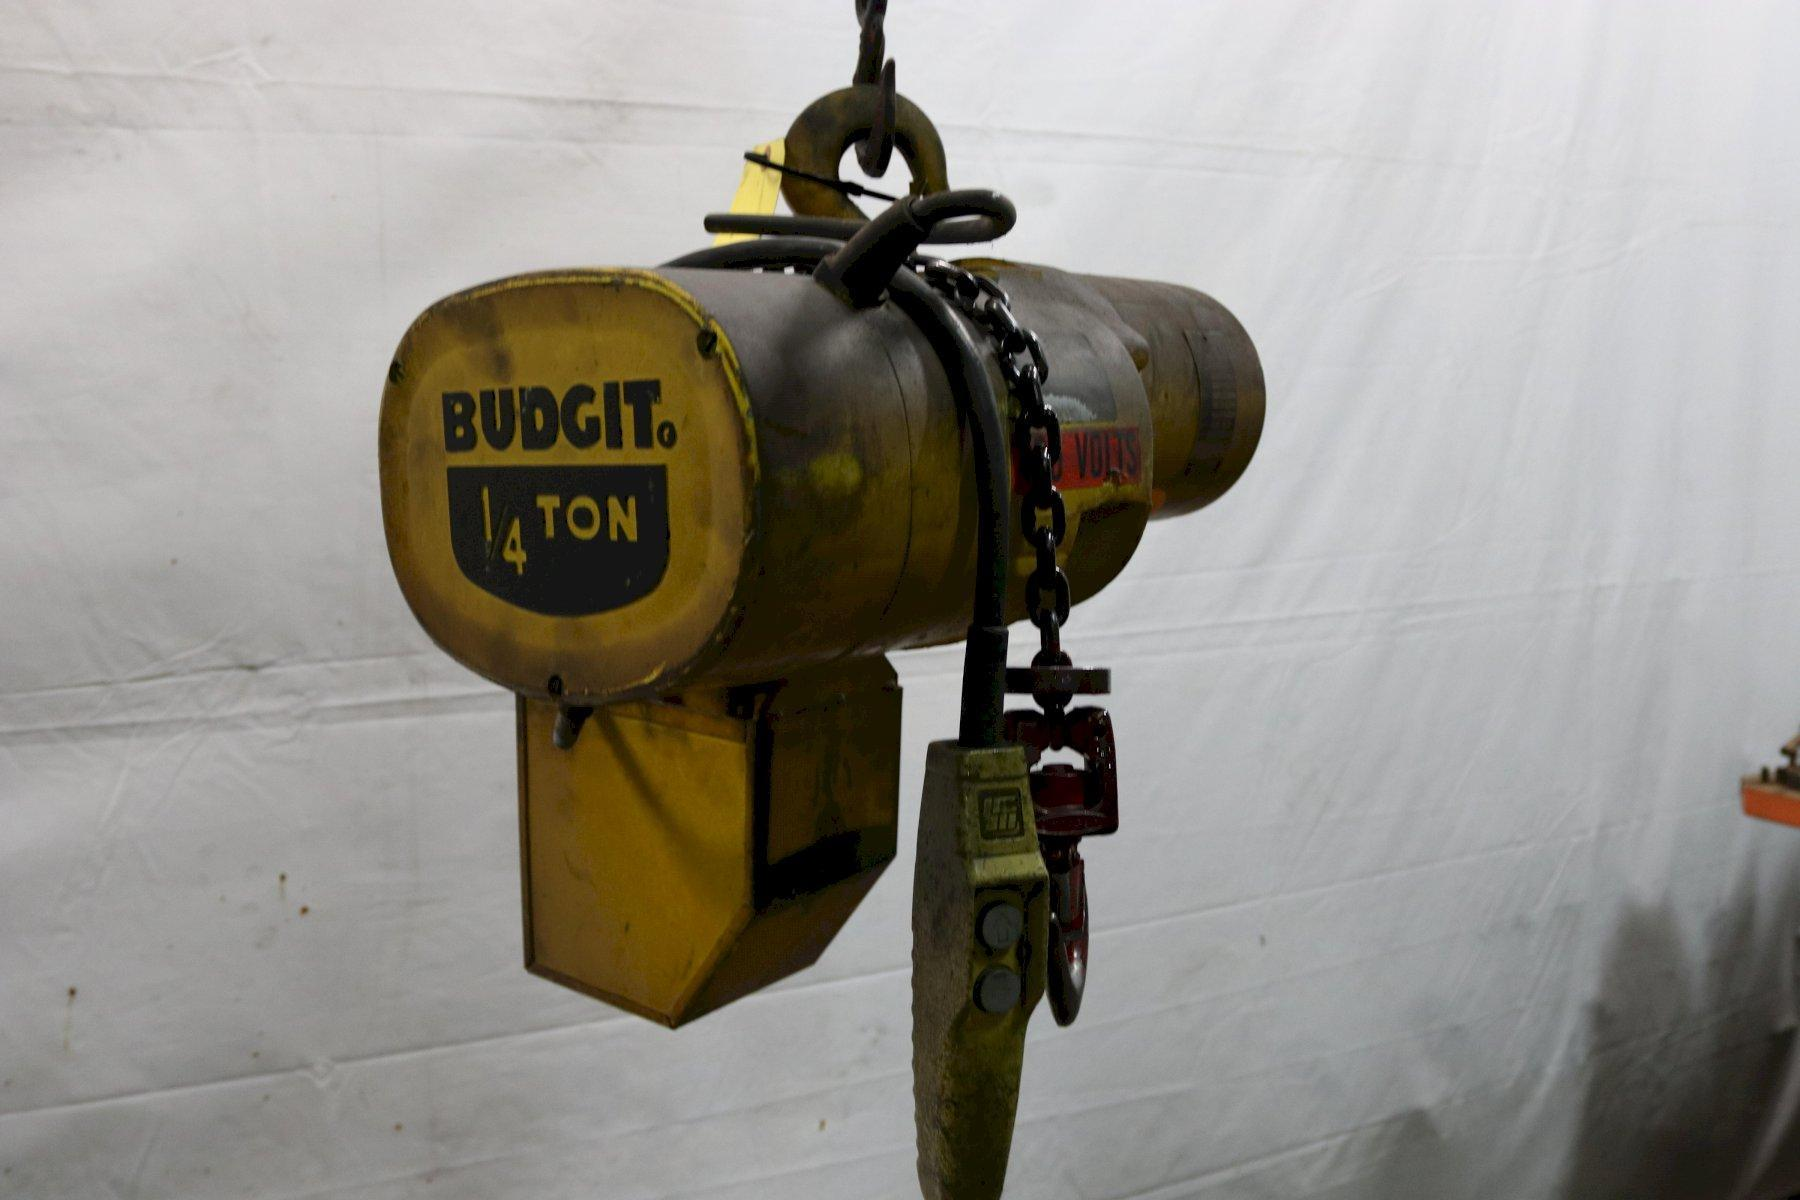 1/4 TON BUDGIT ELECTRIC POWERED CHAIN HOIST : STOCK #11993